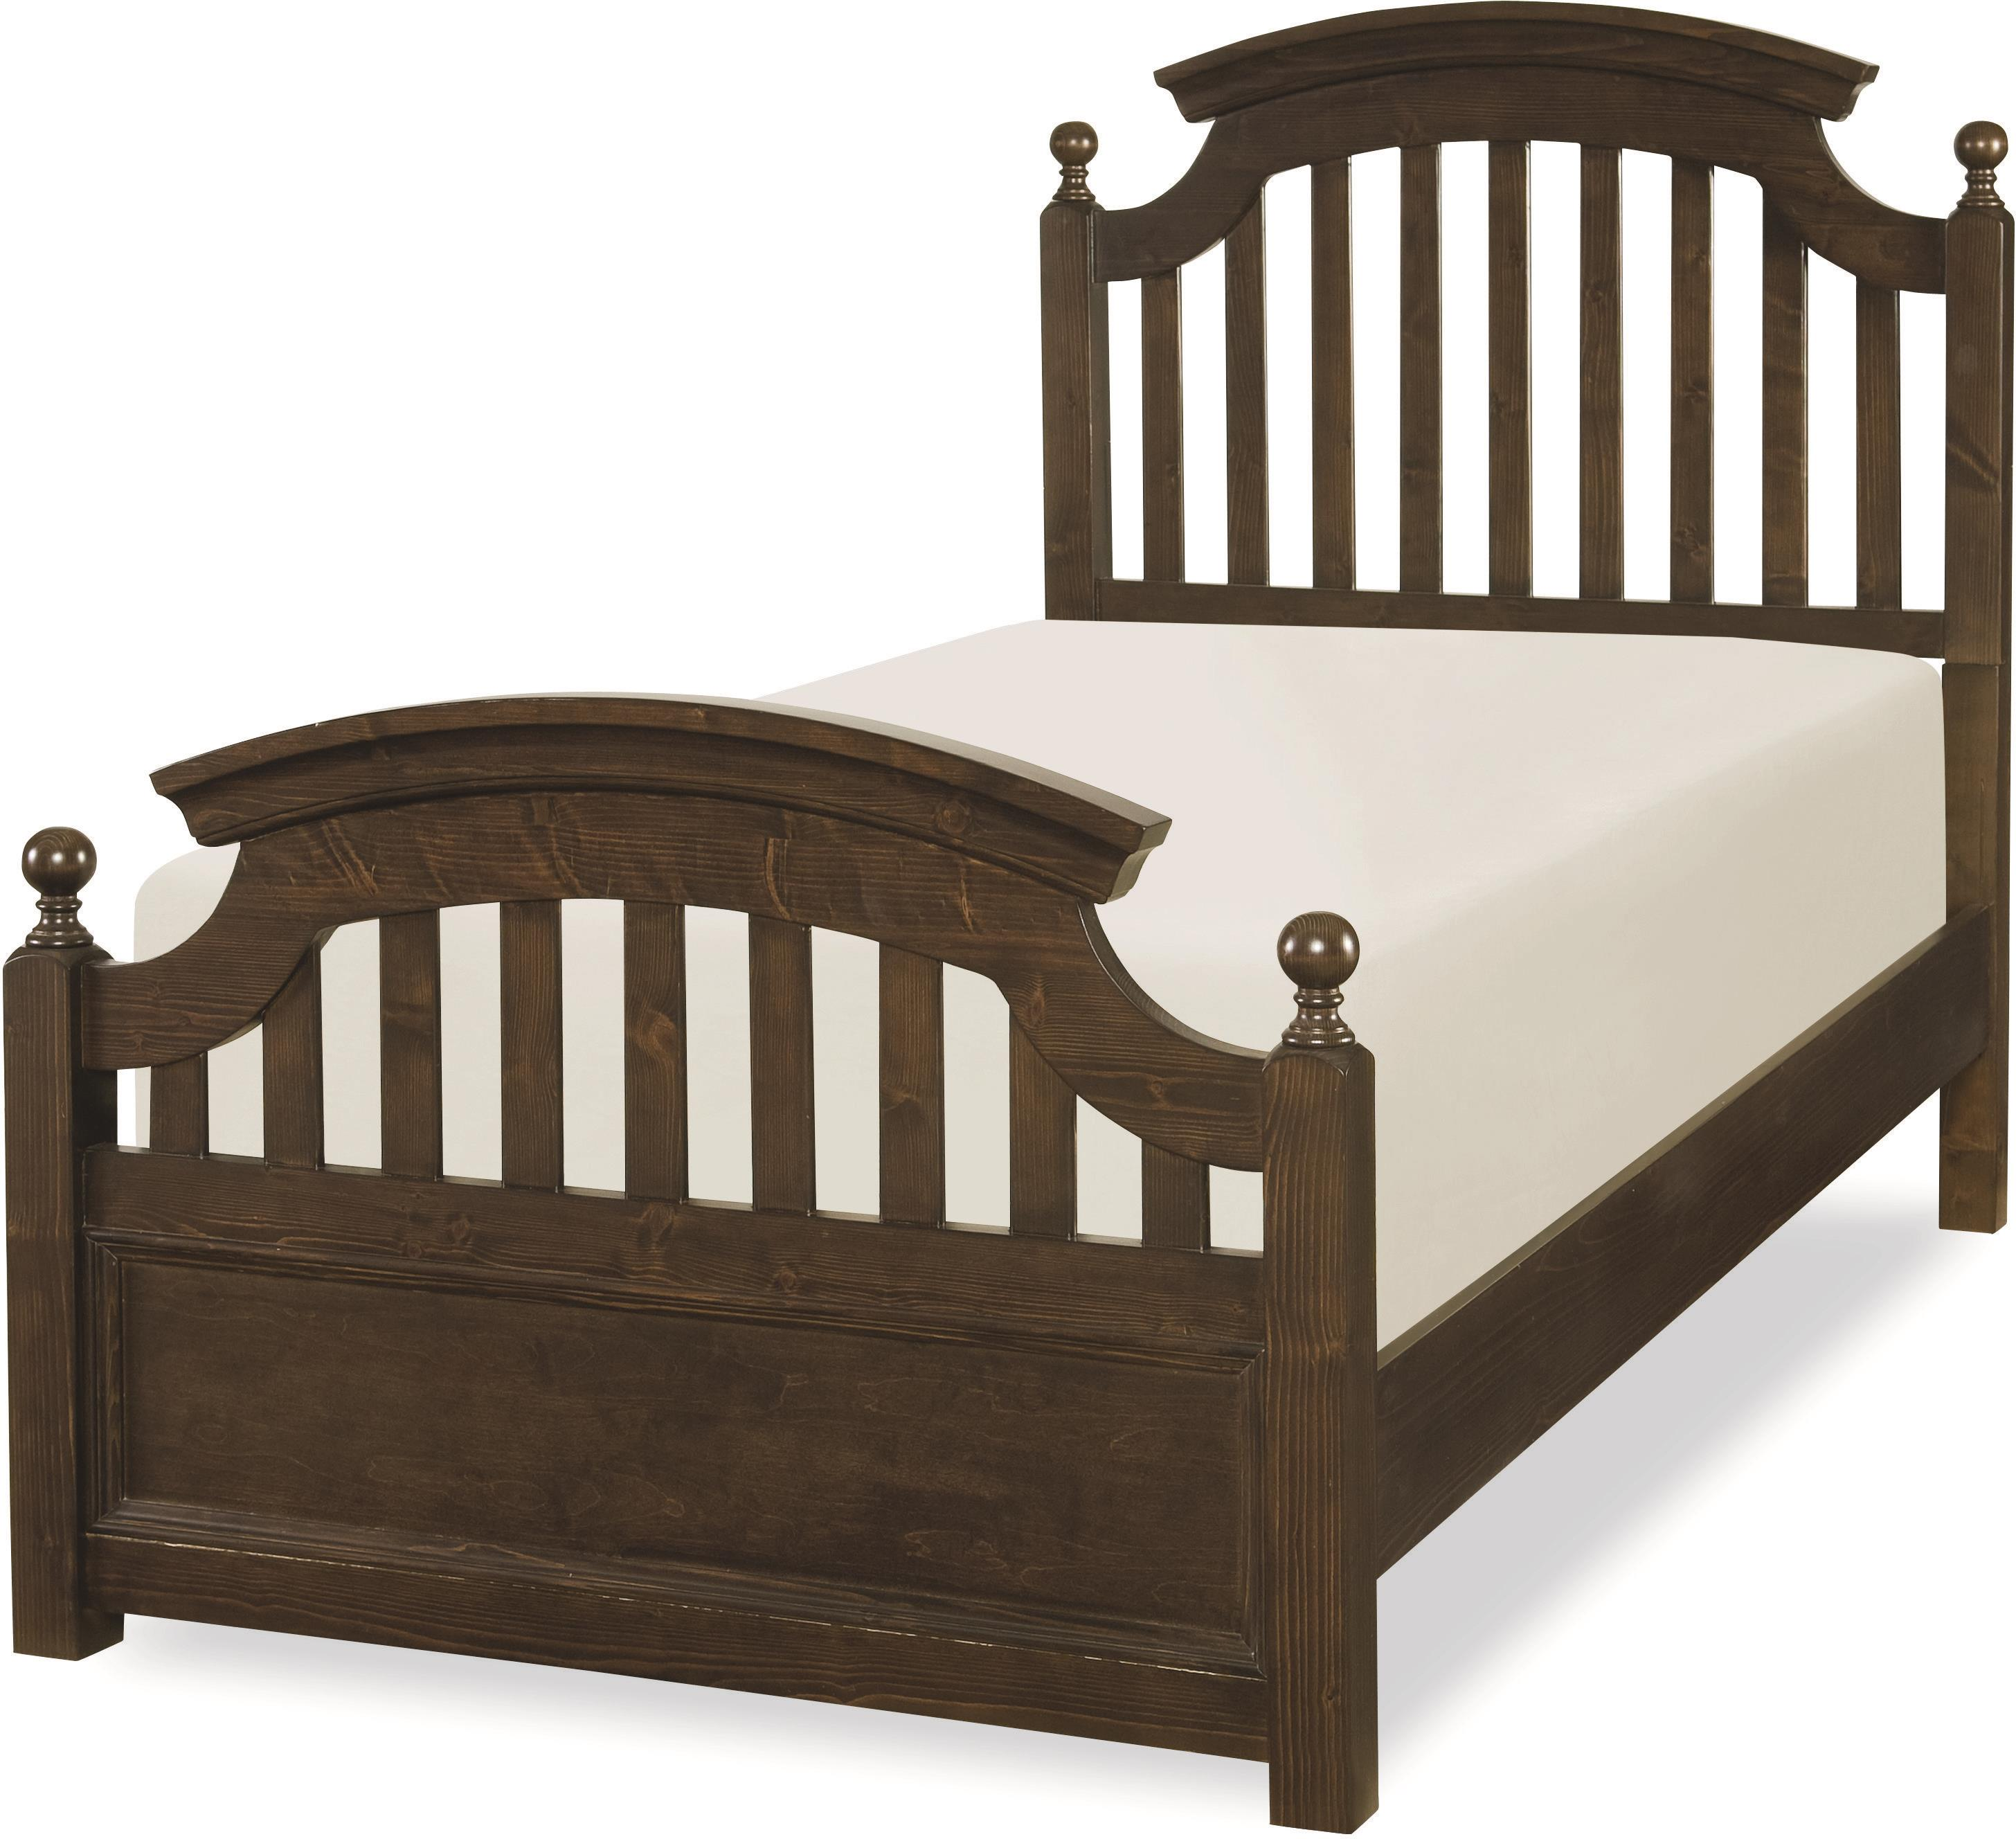 Legacy Classic Kids Academy Full Panel Bed - Item Number: 5810-4104K